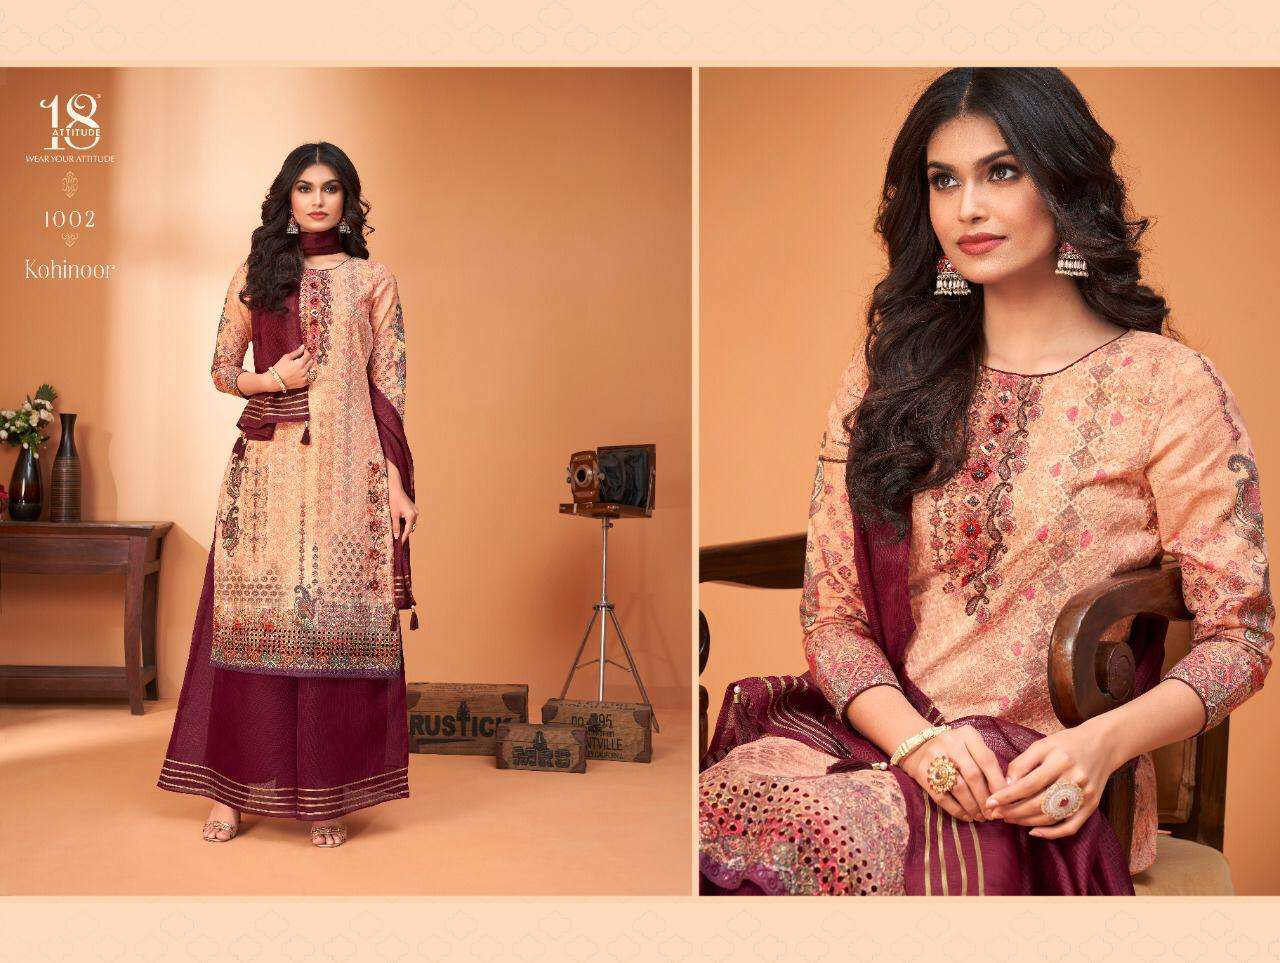 18 Attitude Launched Kohinoor Chiffli Cambric Cotton Print With Handwork Kurtis And Gharara Collection